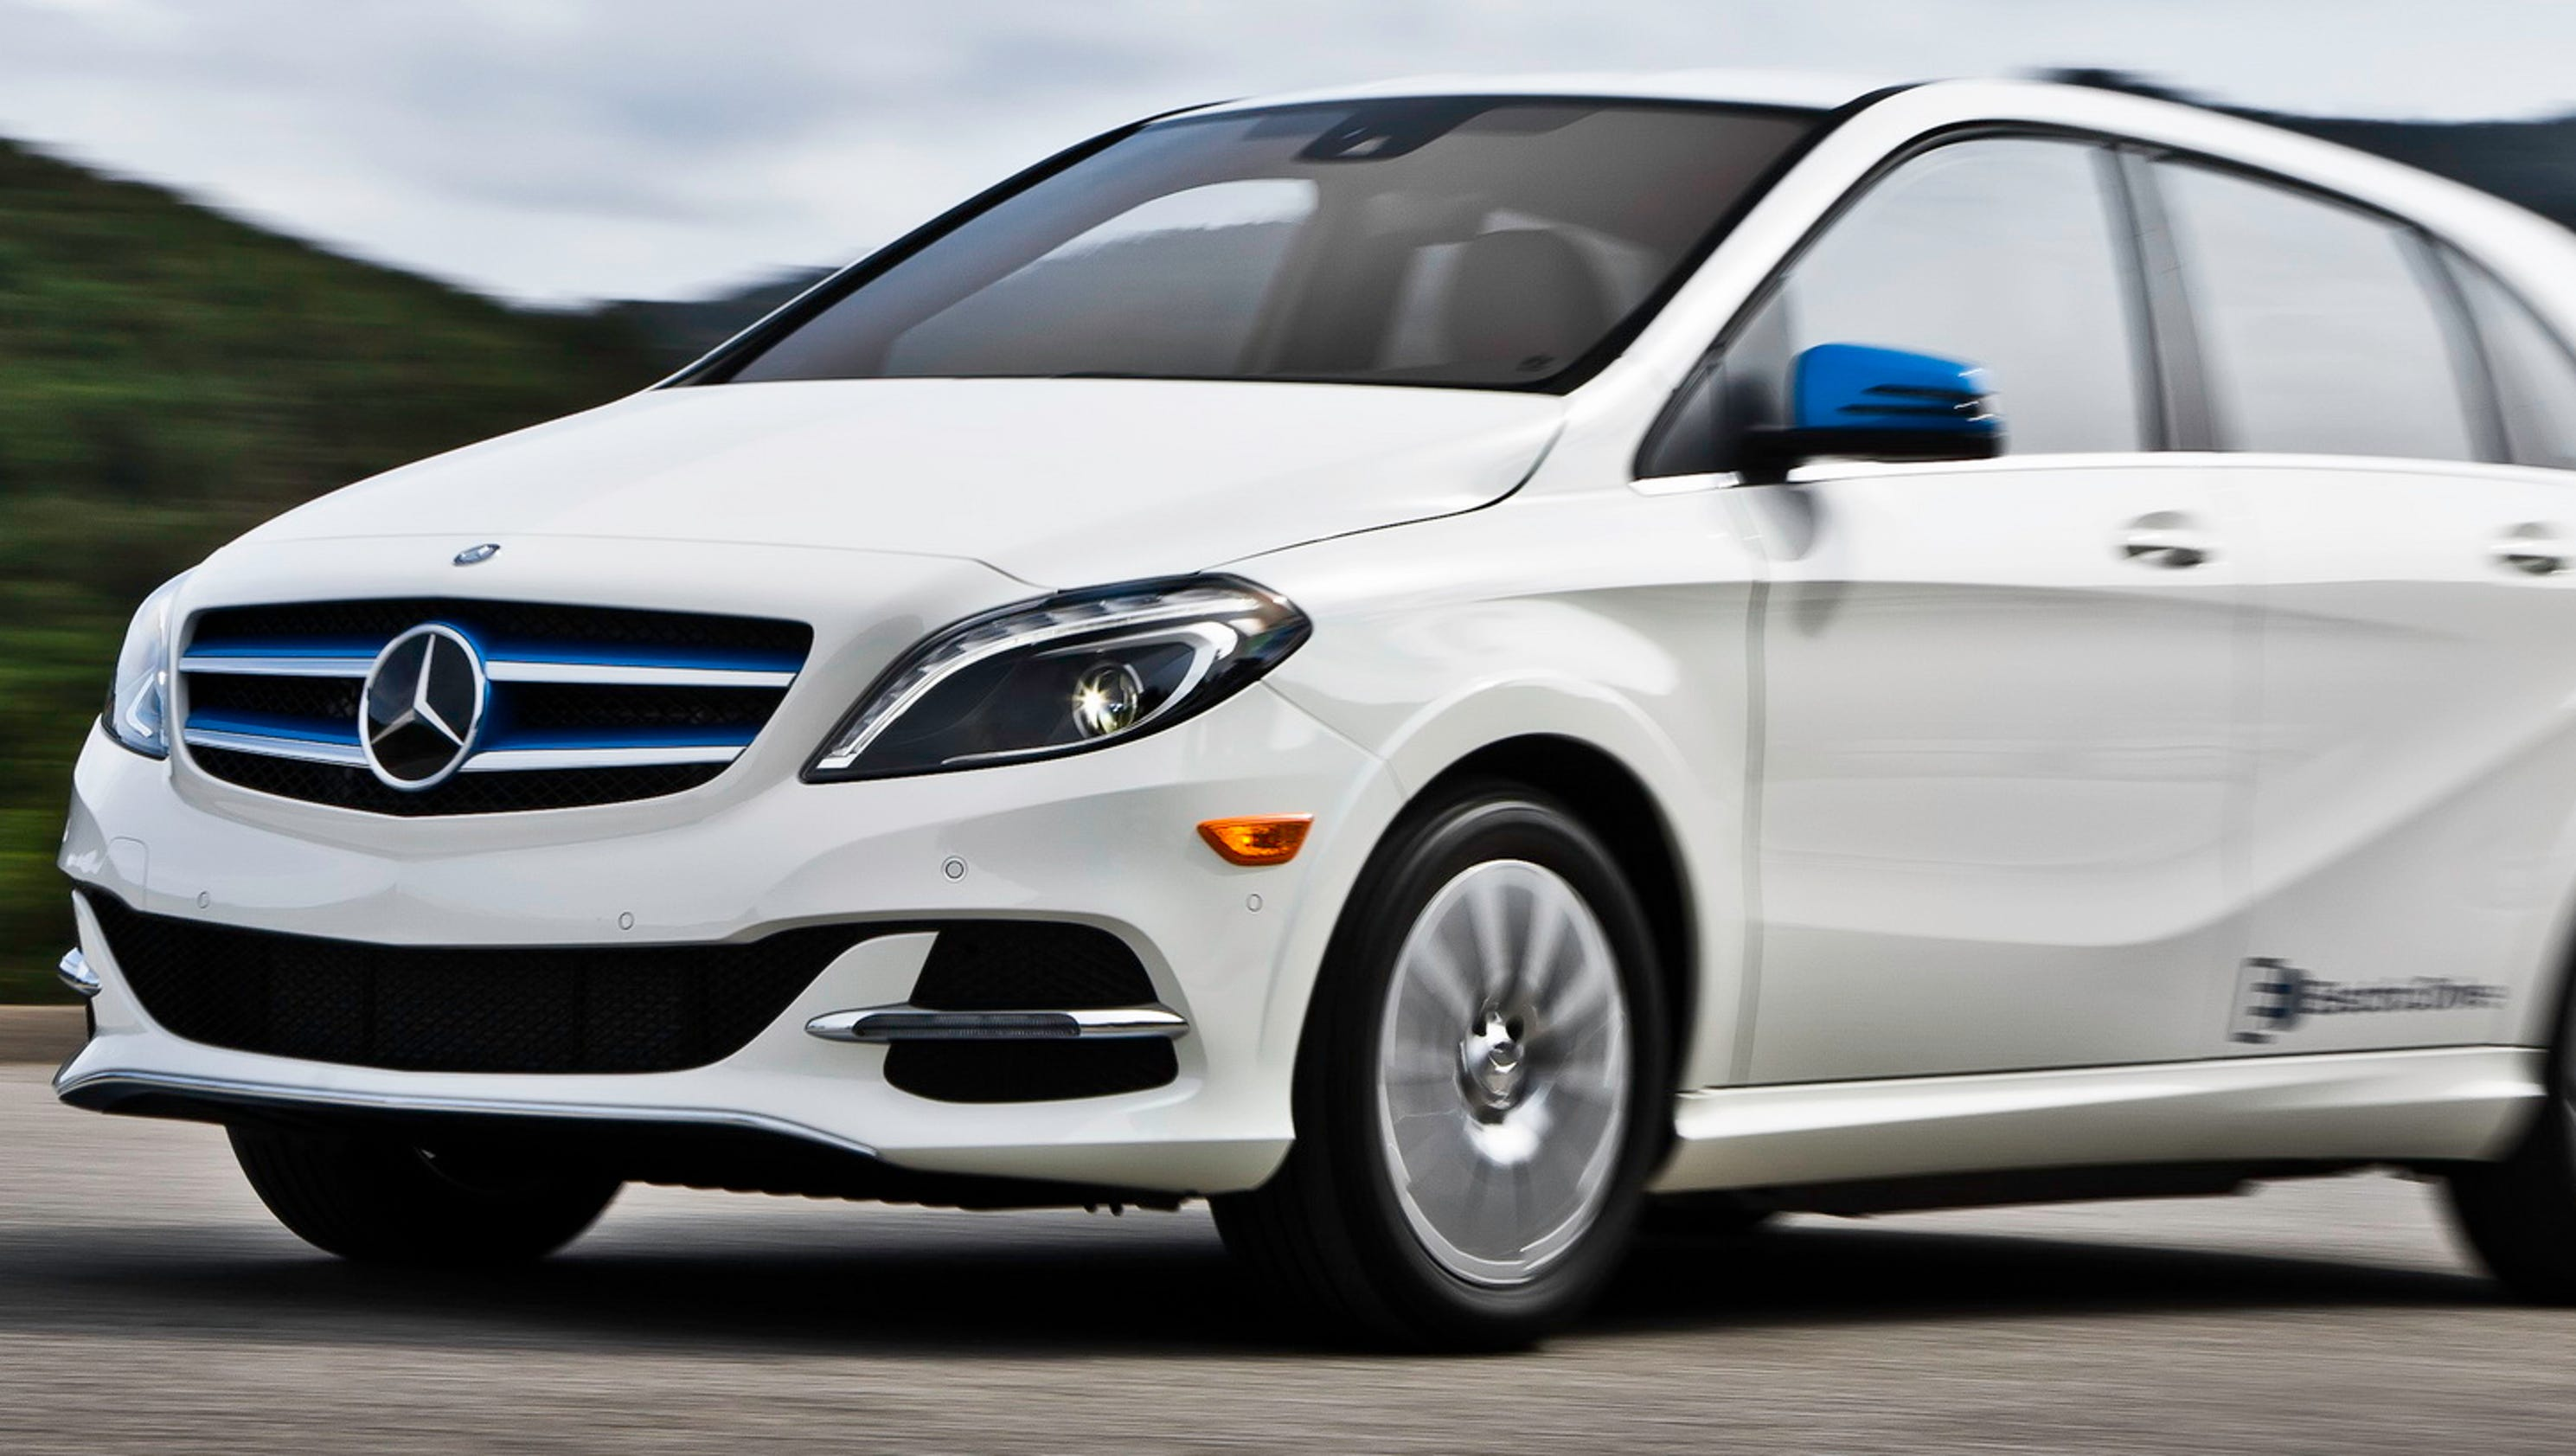 review: 2017 mercedes-benz b class electric drive is dynamic, powerful